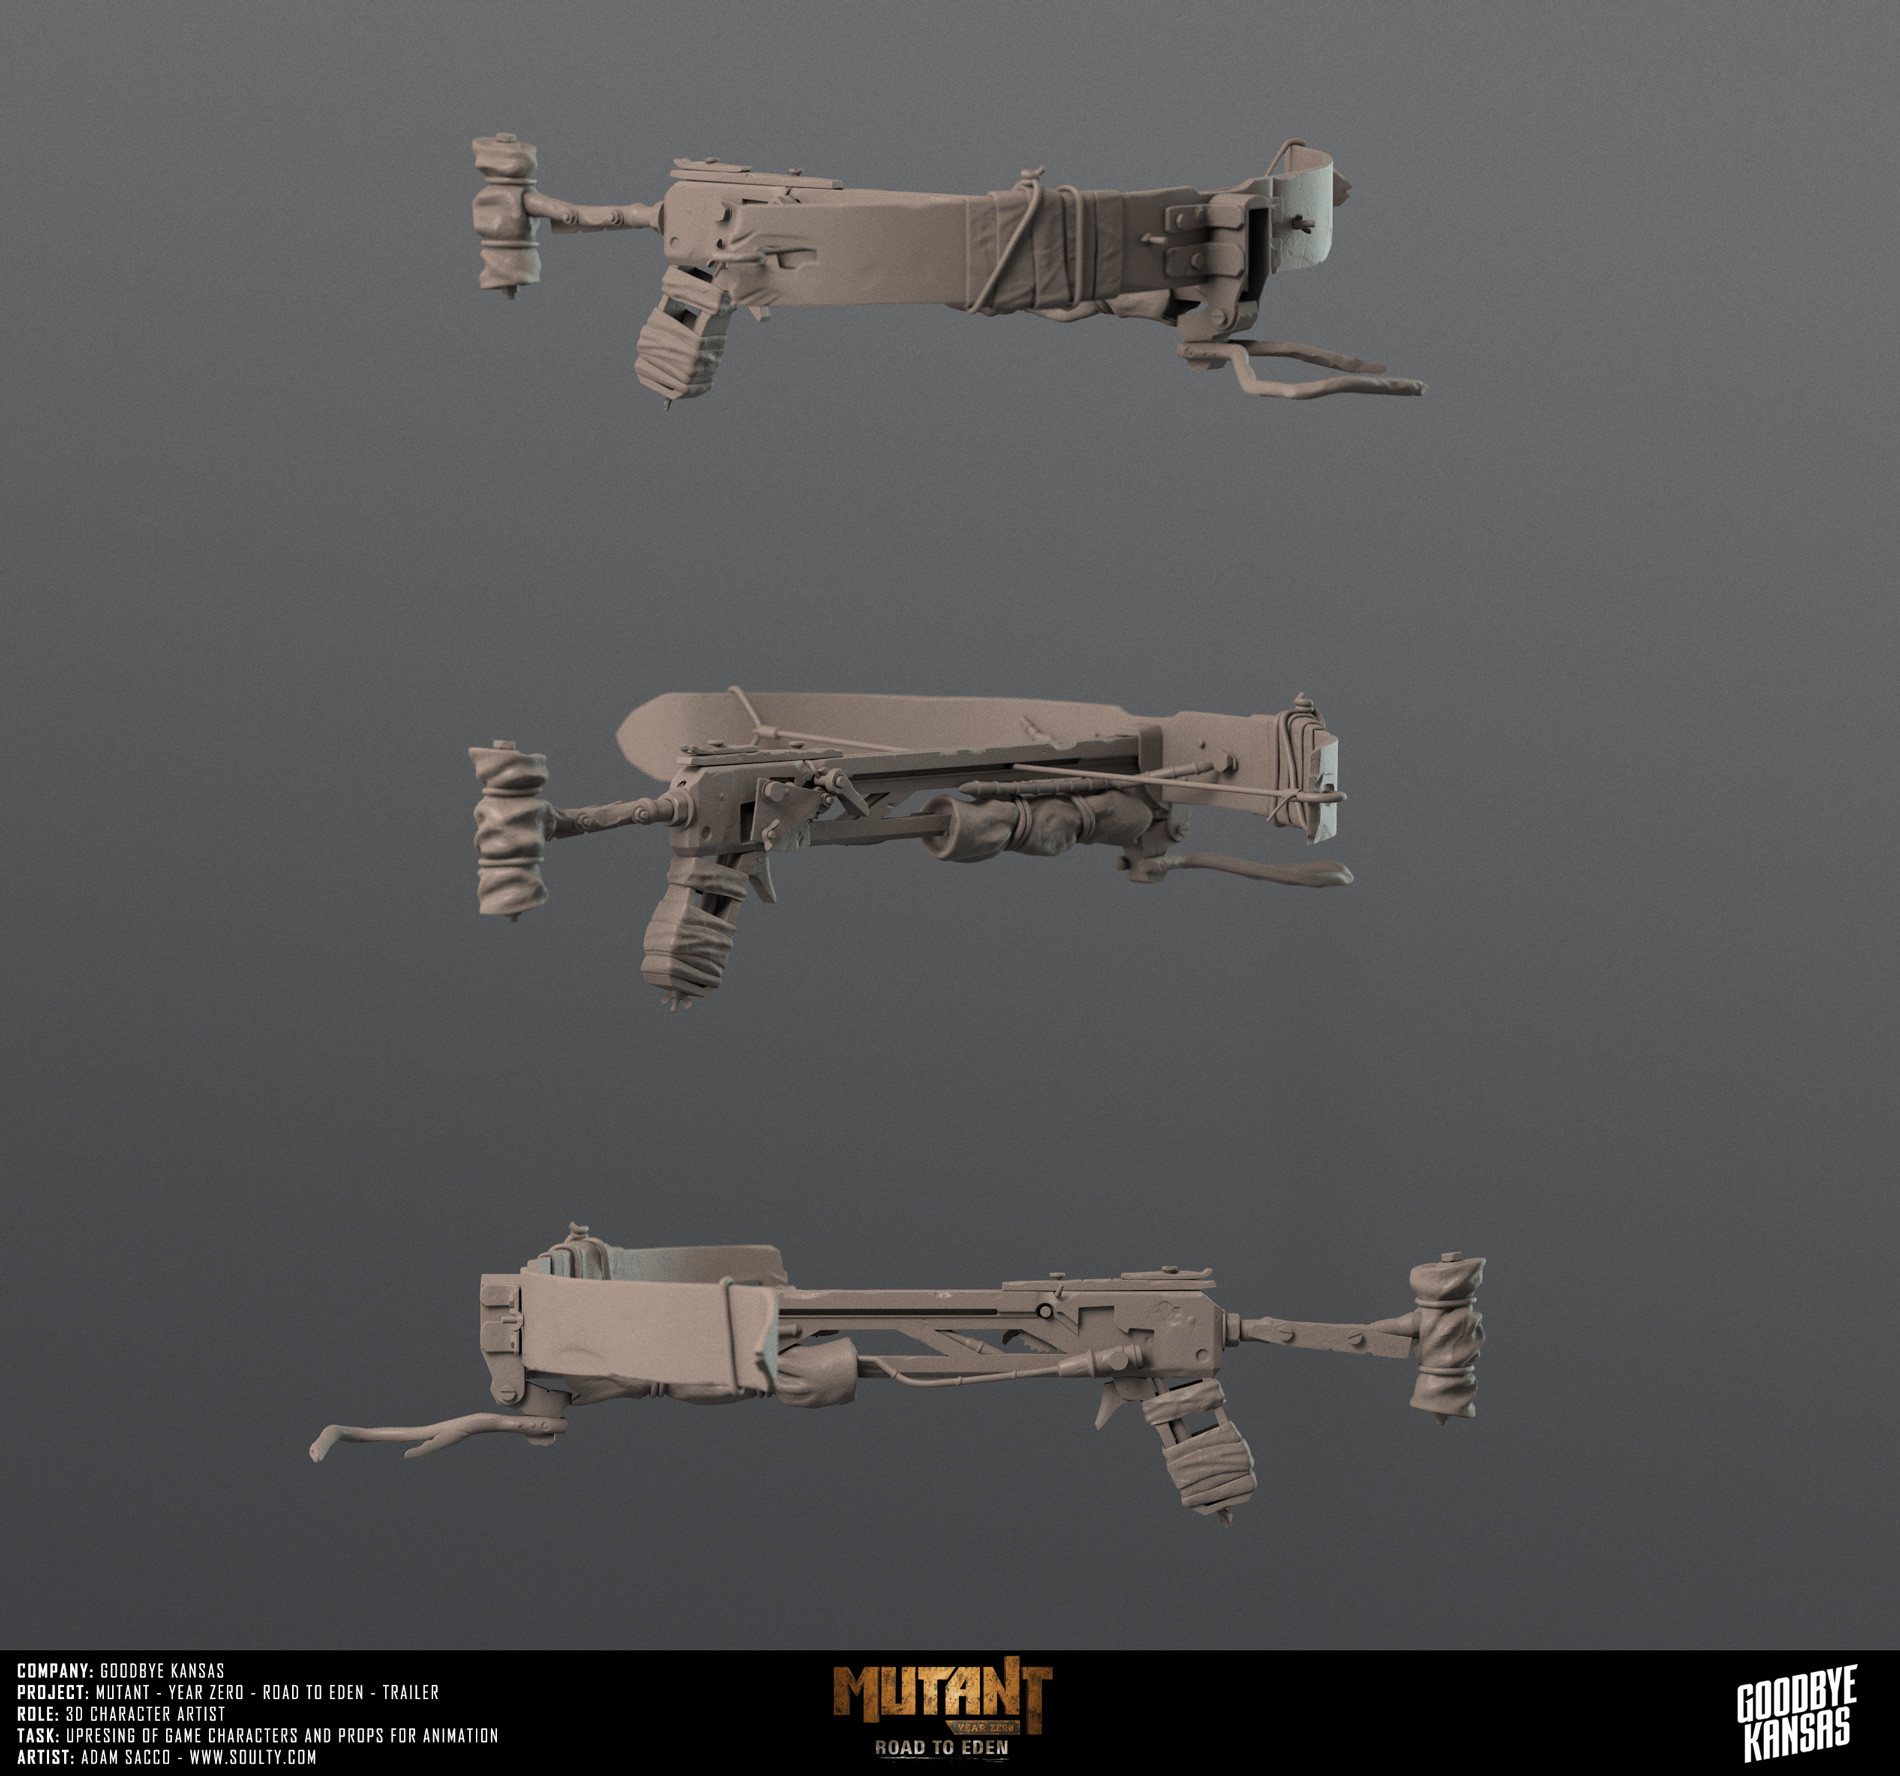 Crossbow prop